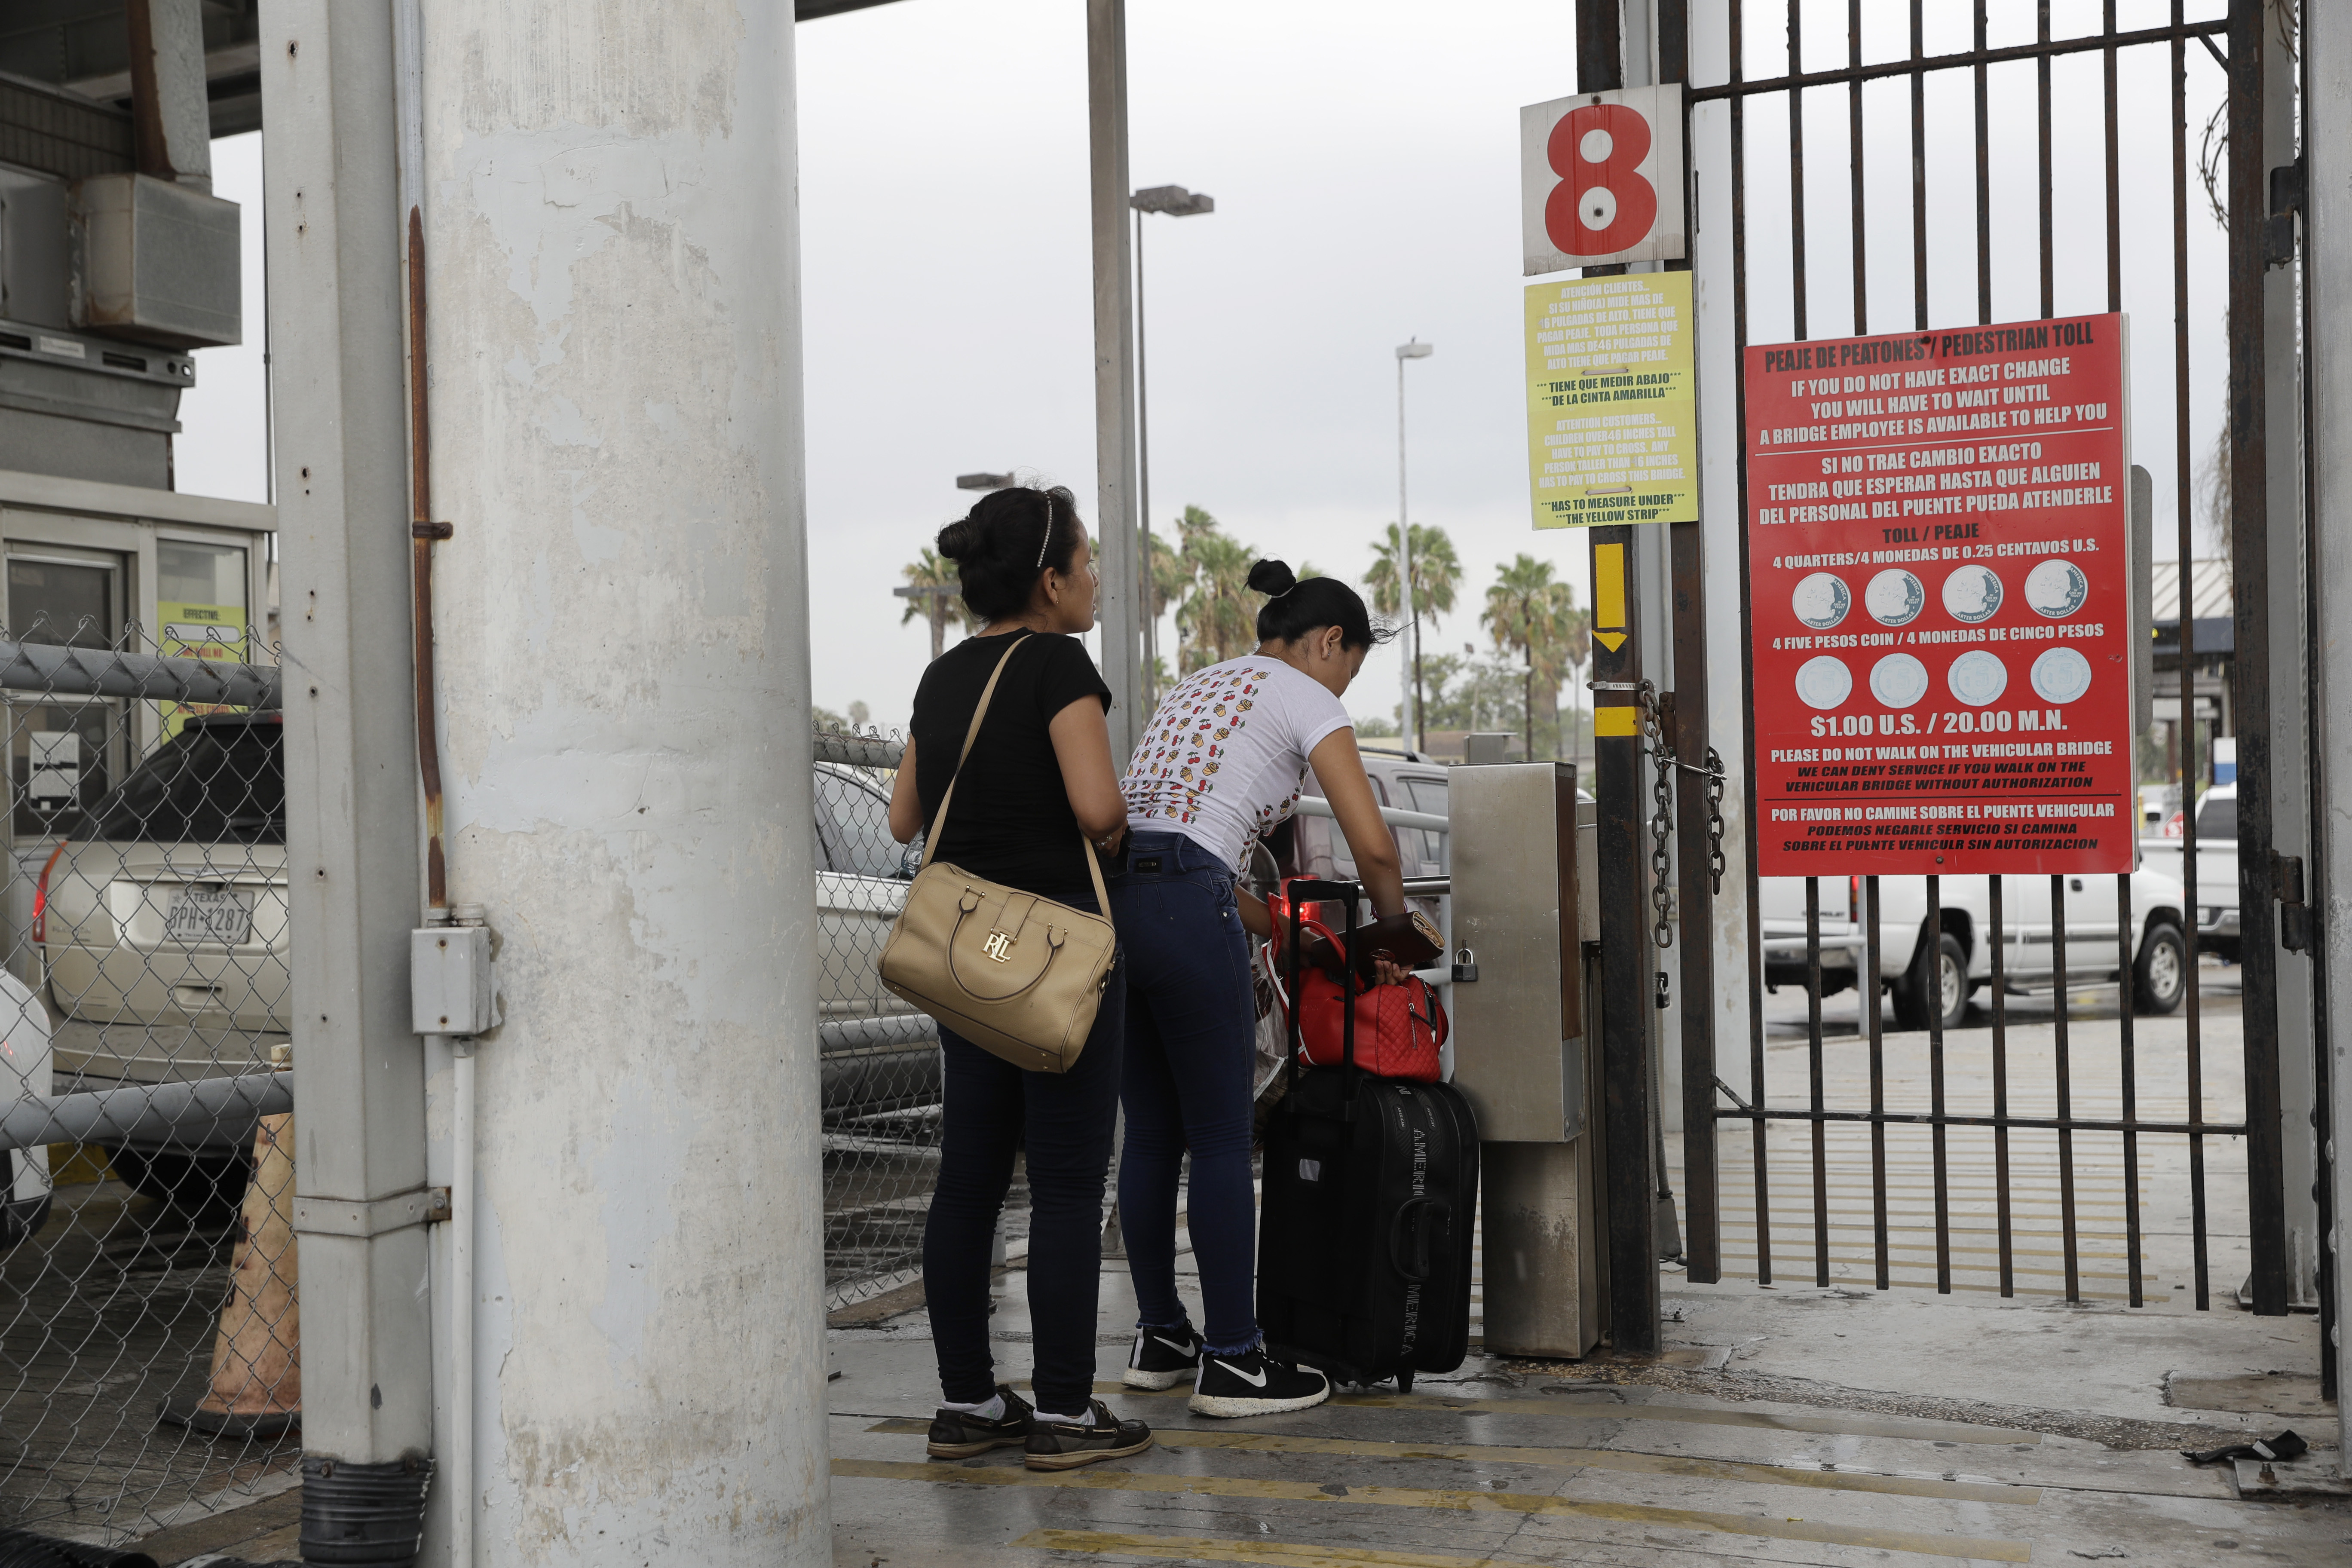 Josseline Garcia, 20, and Jennifer Garcia, 24, sisters from Guatemala seeking asylum, cross a bridge to a port of entry in to the United States from Matamoros, Mexico, June 20, 2018, in Brownsville, Texas.